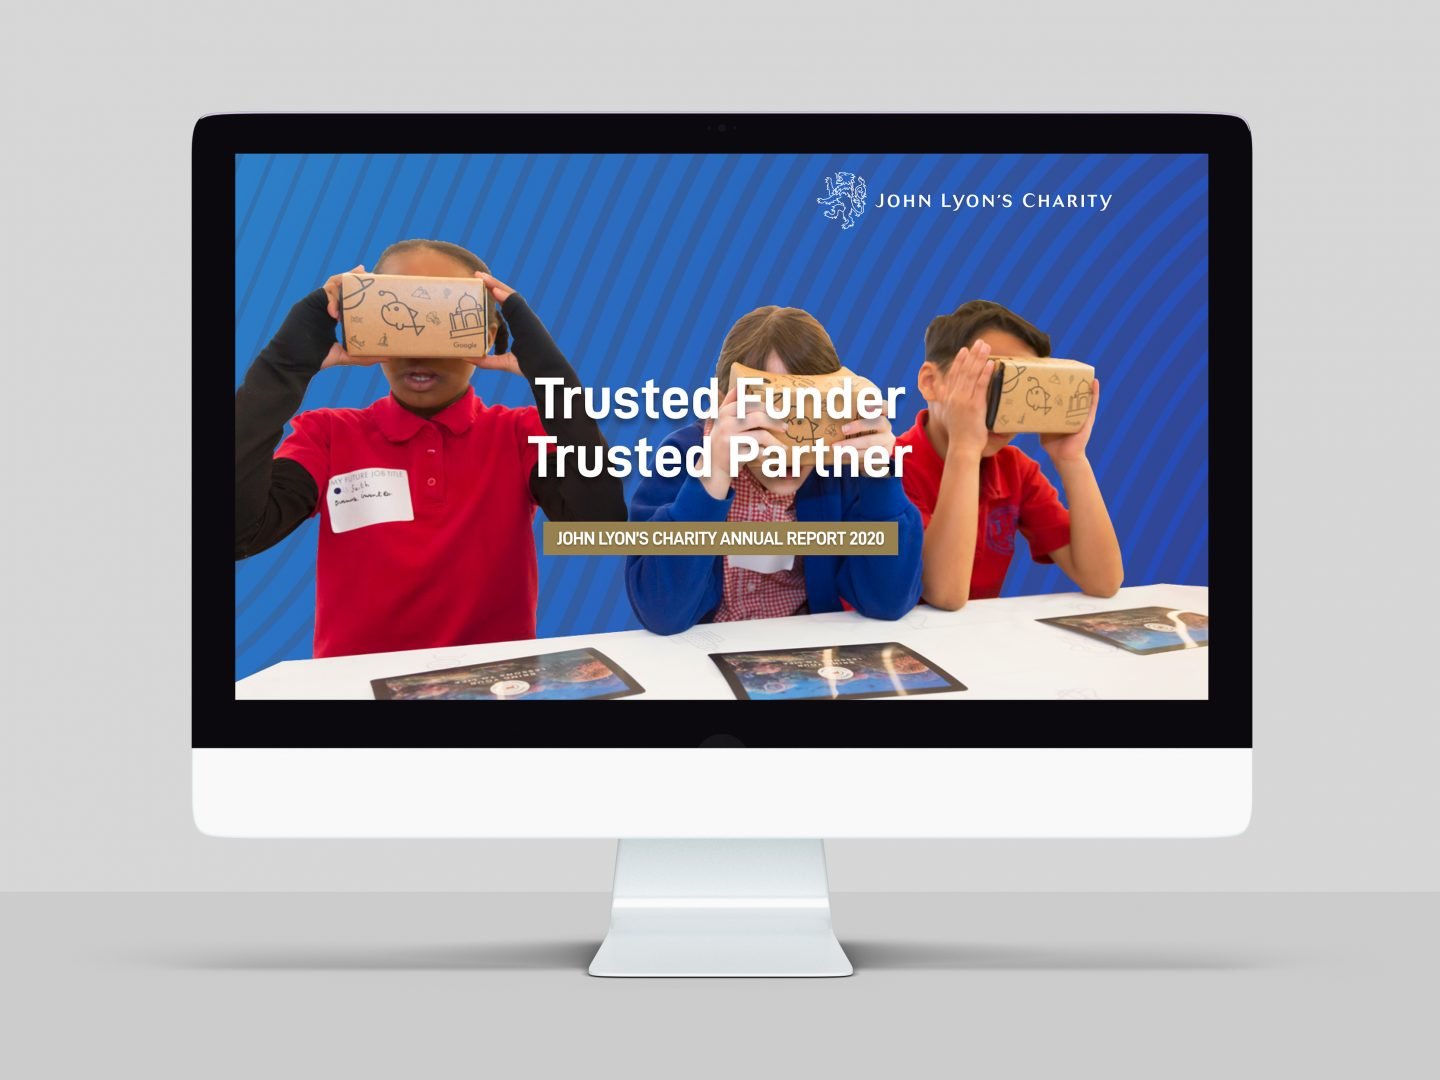 Online Annual Report design and build for John Lyon's Charity